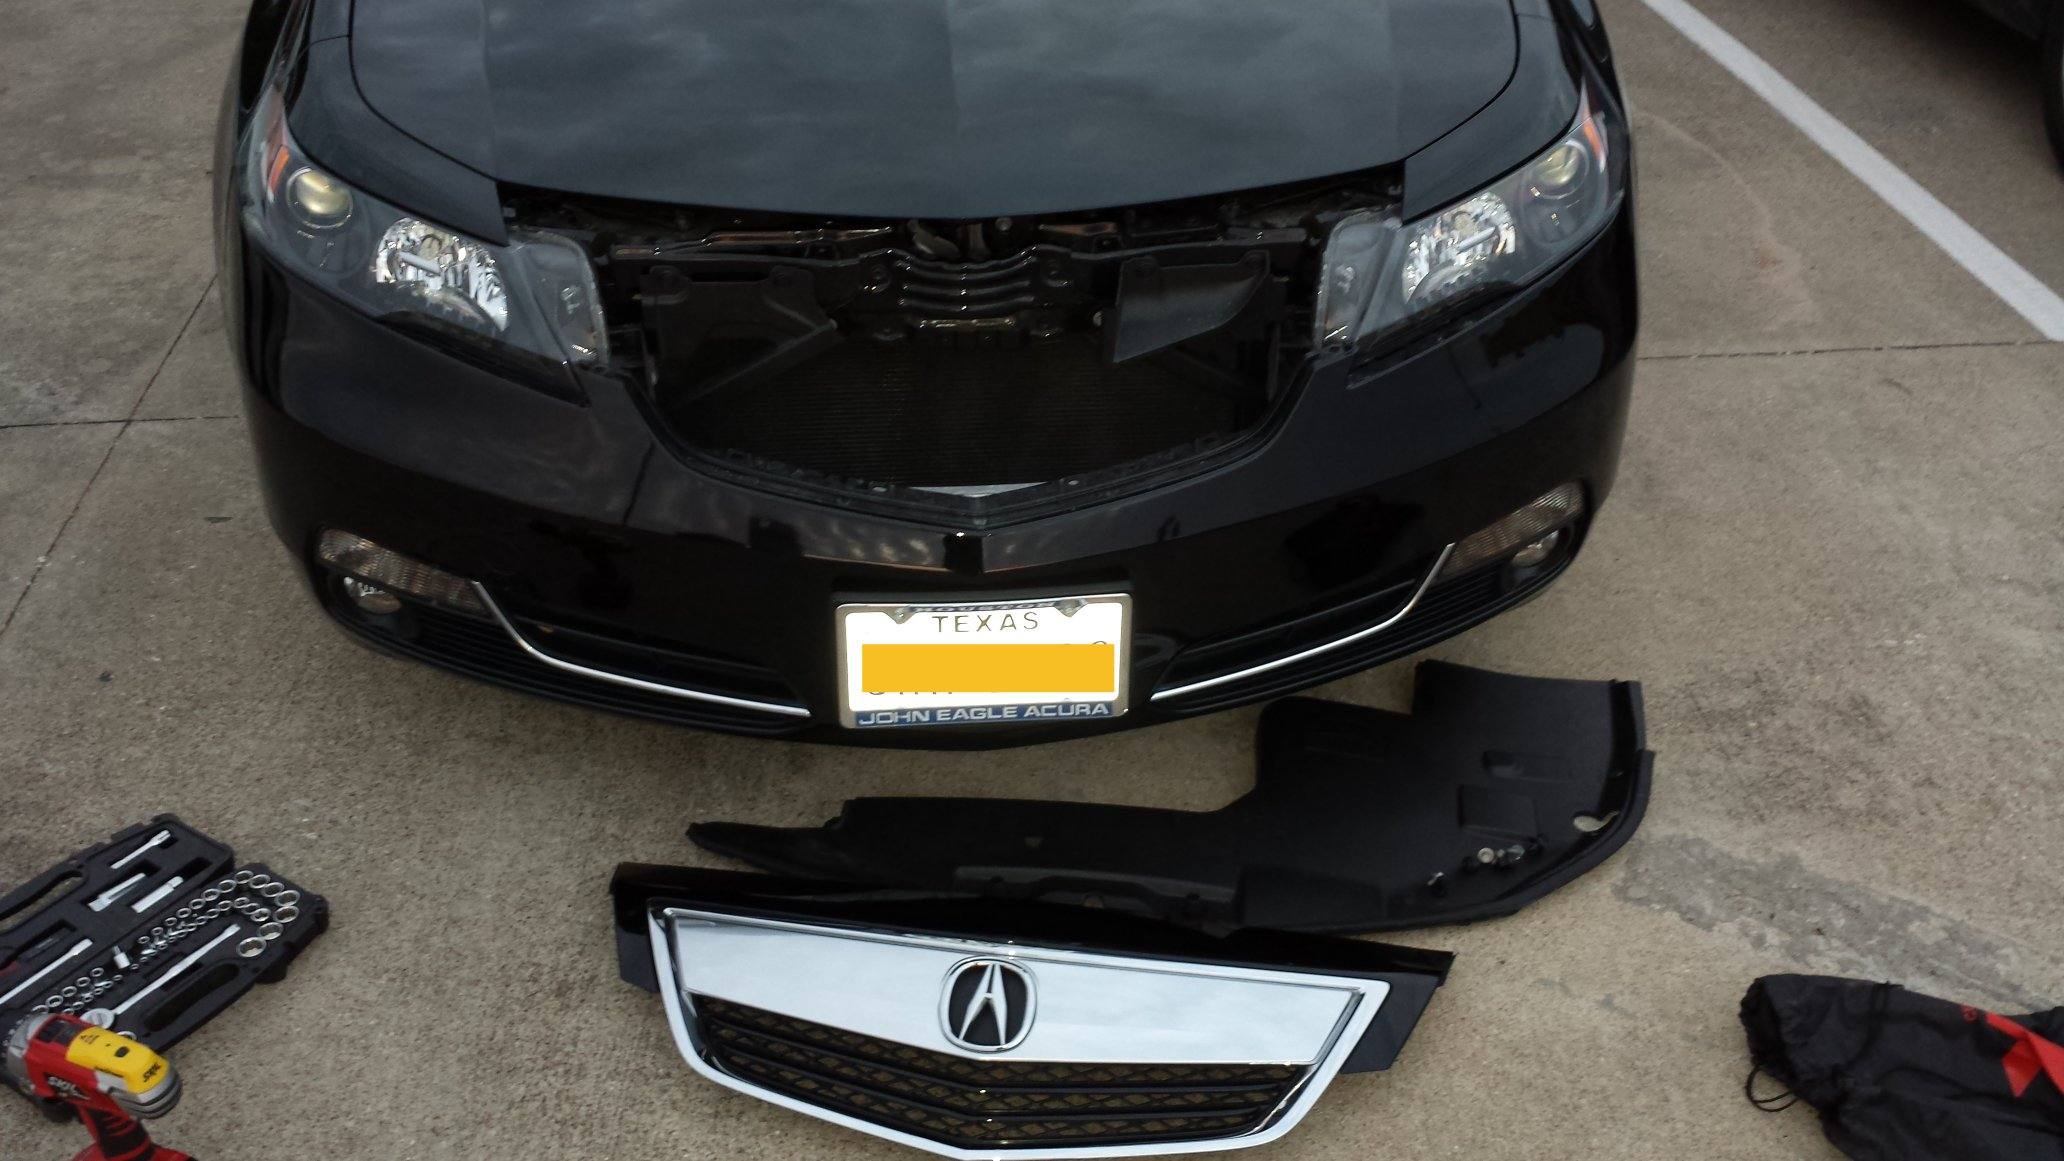 Remove the front Grill or Beak on 2013 TL - AcuraZine ...